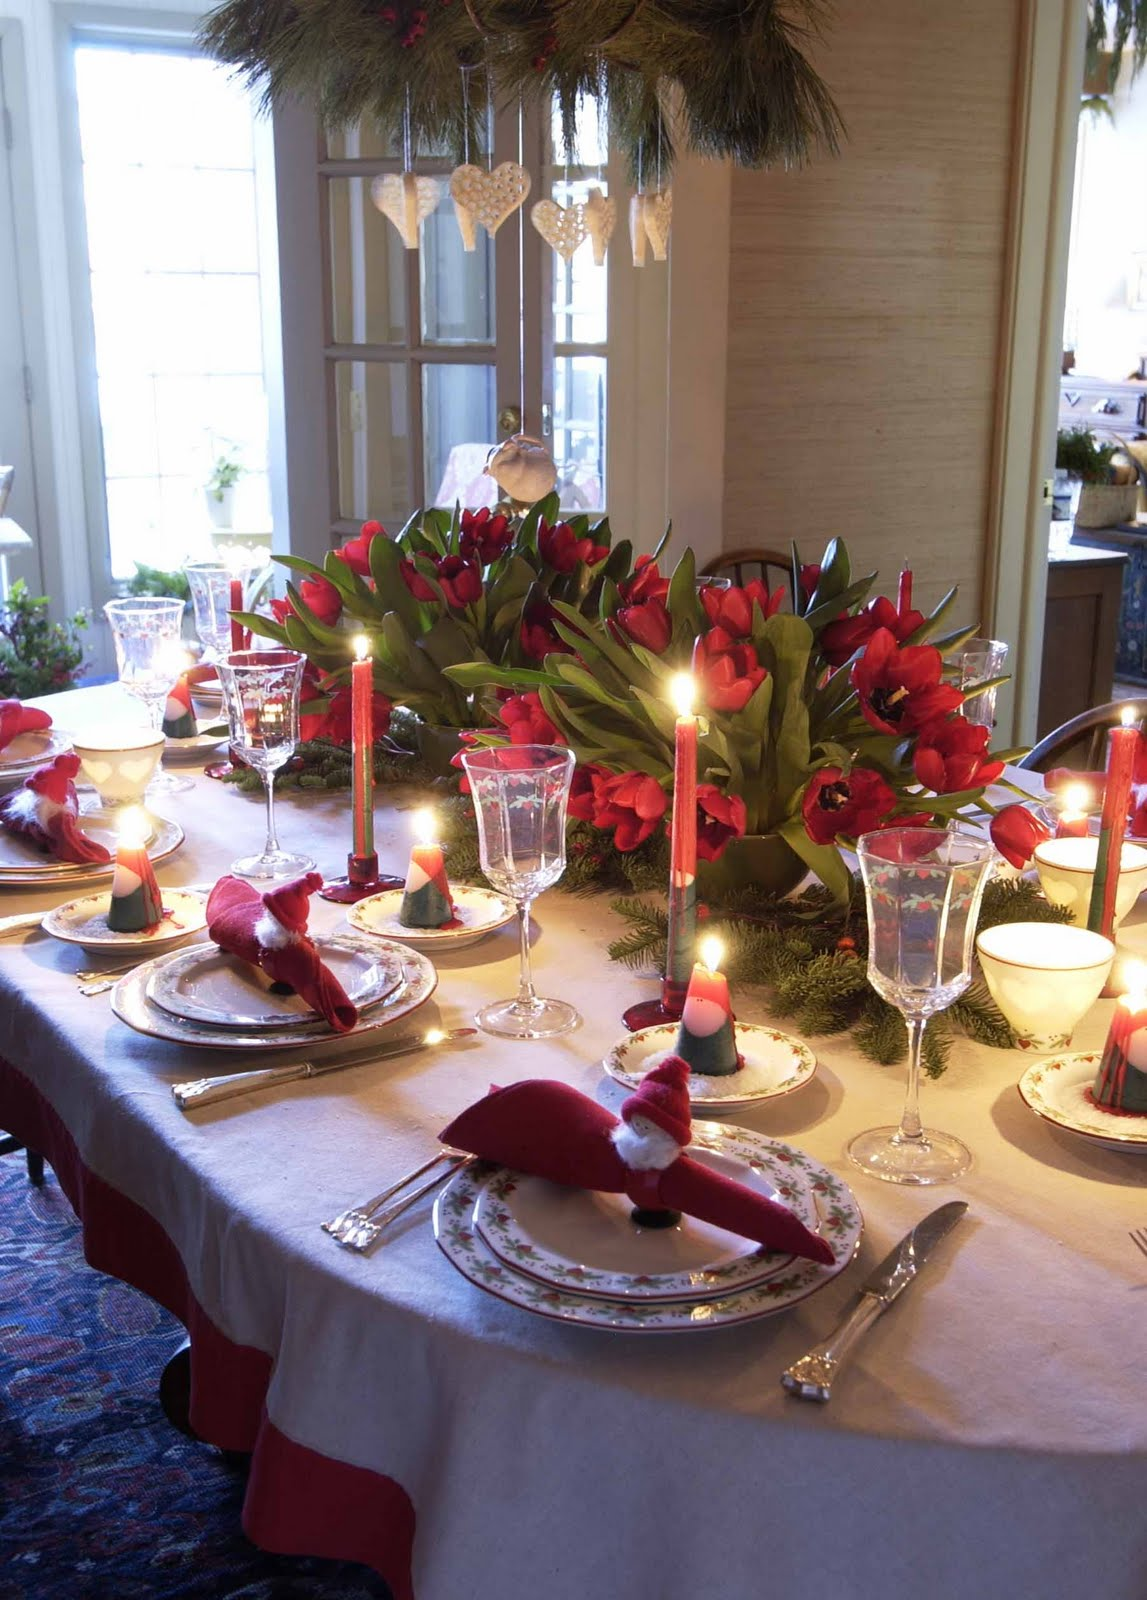 Decorating Ideas > How To Decorate Your Christmas Table 2 ~ 034245_Christmas Decoration For A Table